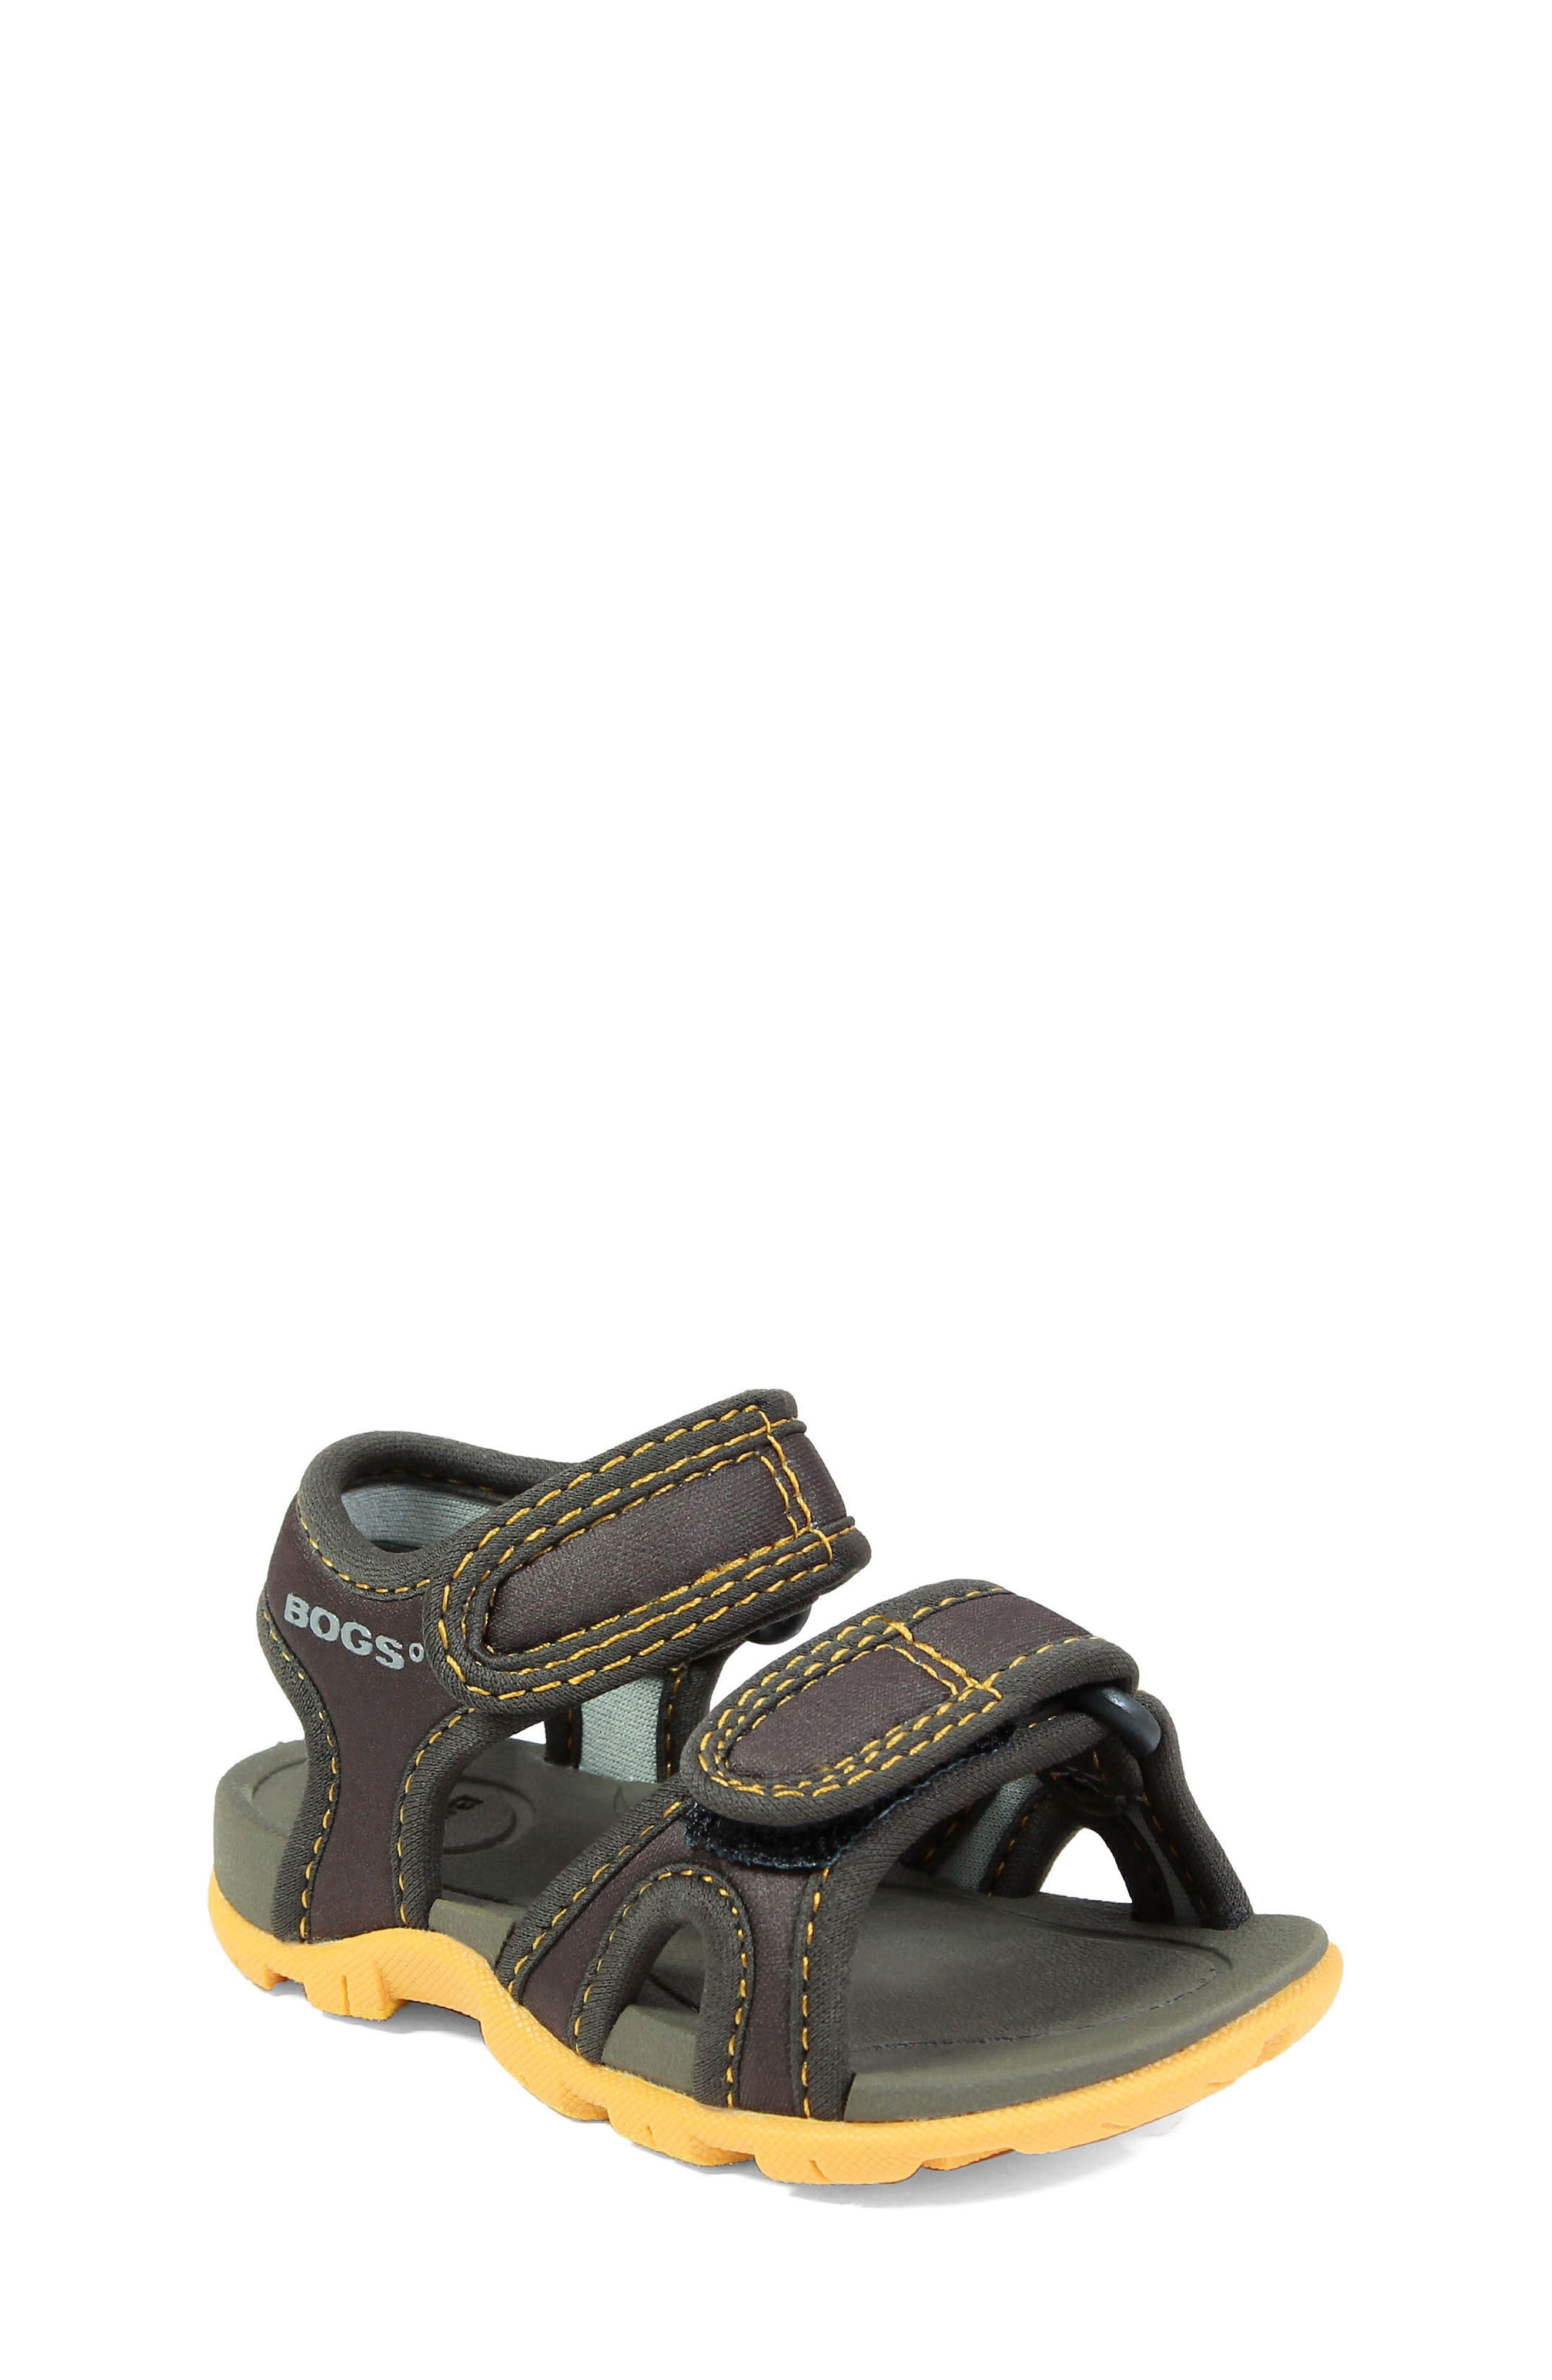 Whitefish Waterproof Sandal,                         Main,                         color, OLIVE MULTI